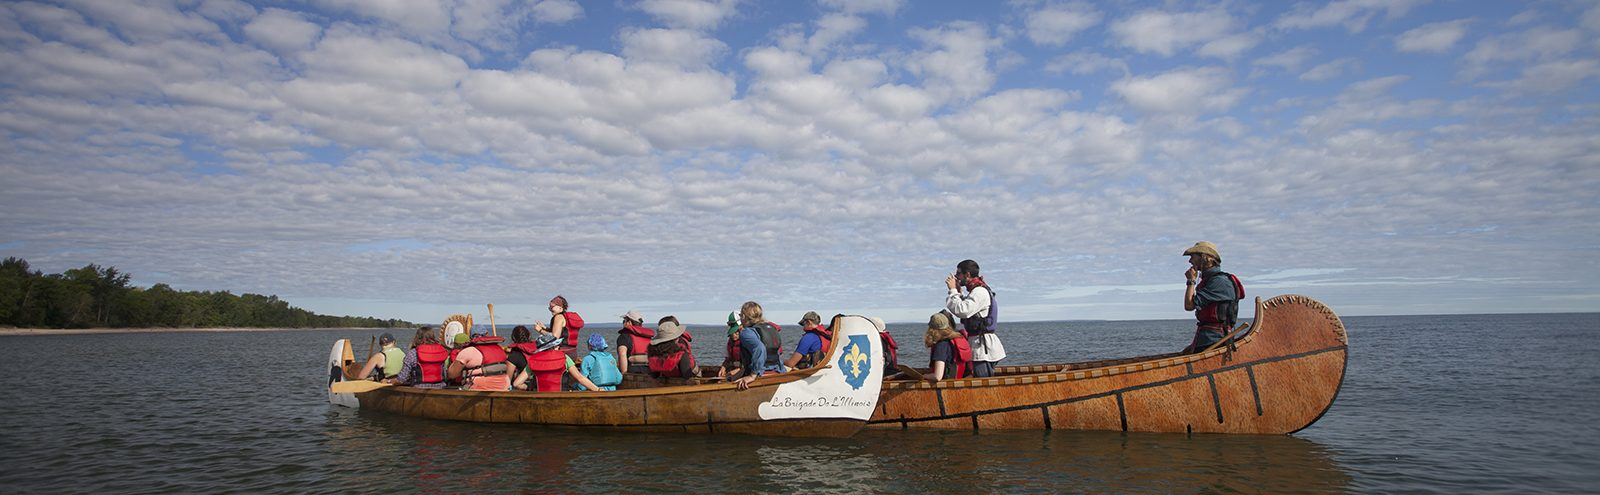 Northland College voyageur canoe outdoor orientation